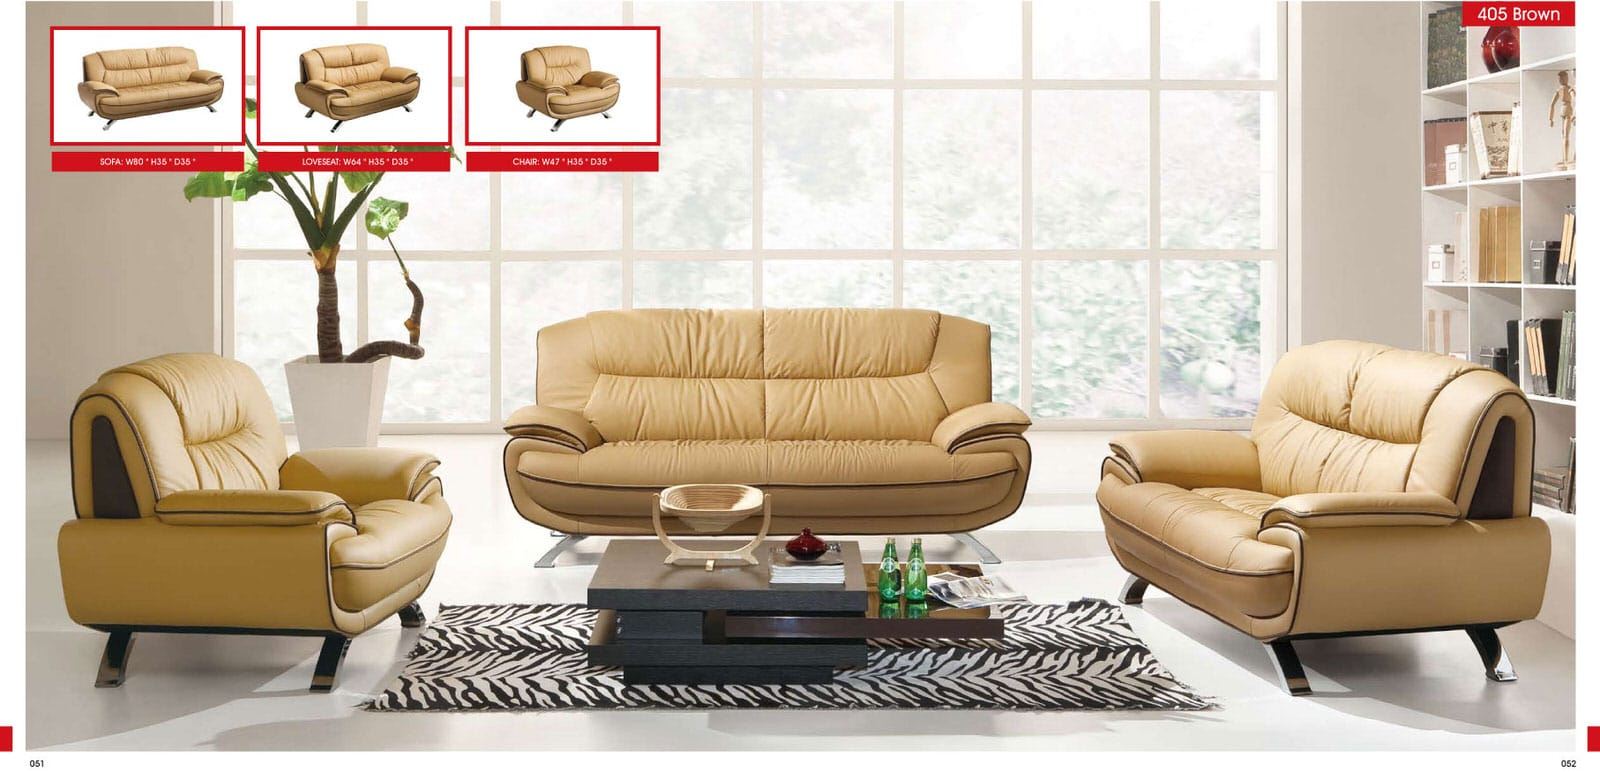 405 brown leather sofa set by esf for Contemporary lounge chairs living room